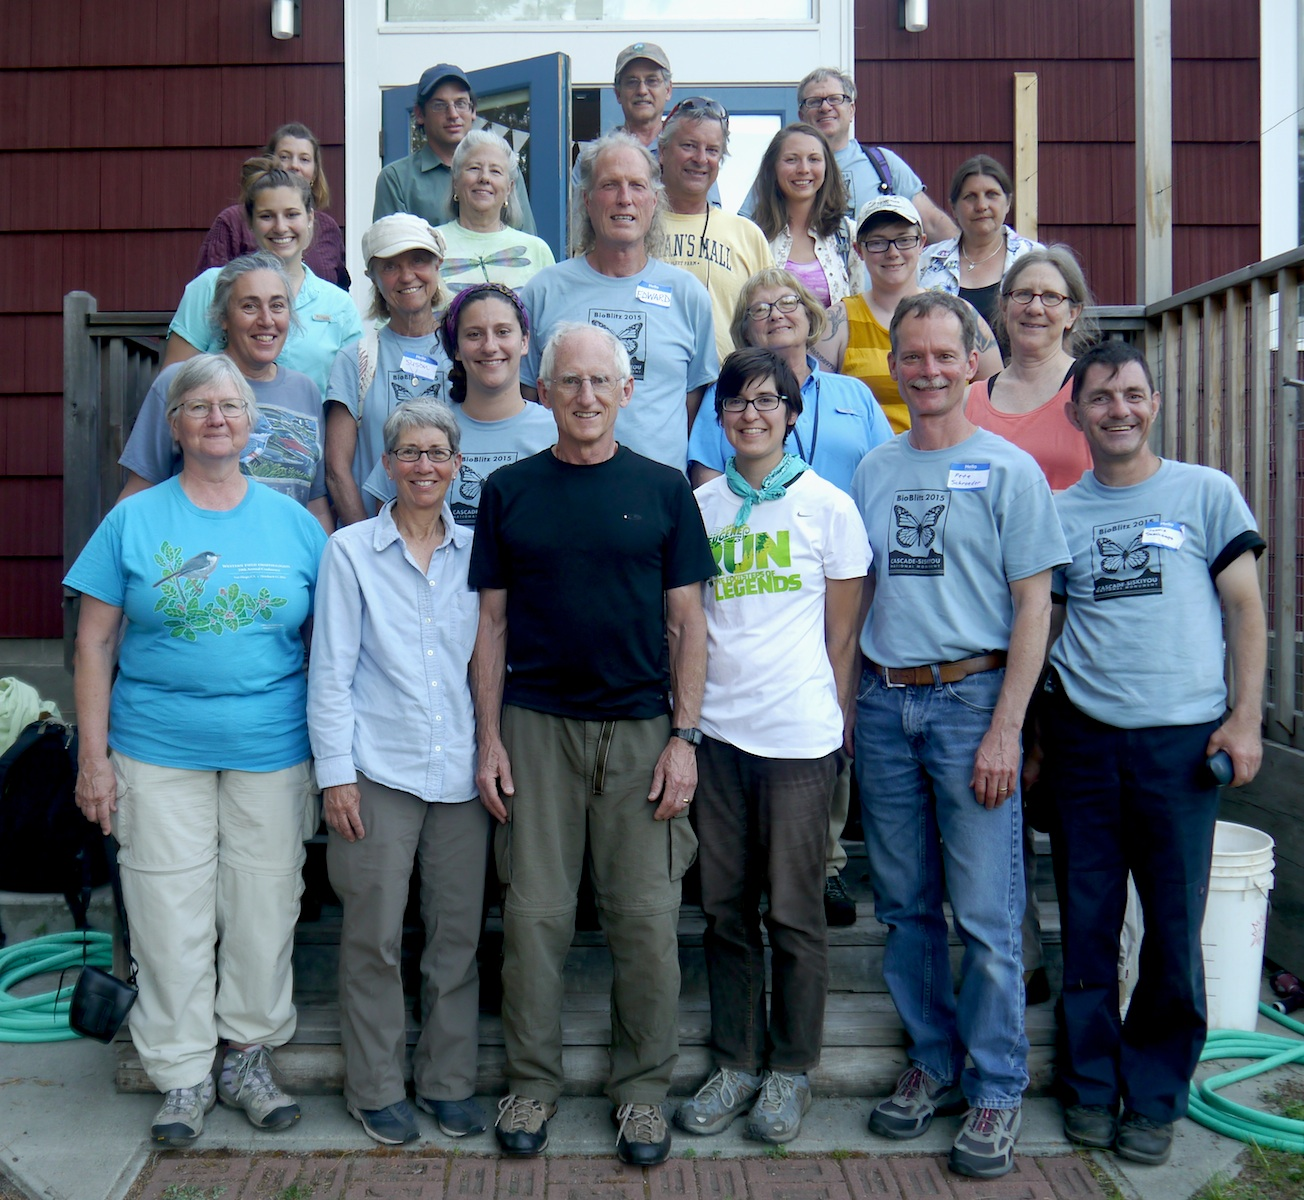 Peter schroeder, 2015 Bioblitz coordinator (2nd Right) stands with Research Team Leaders and Citizen Scientists. TPD Photo 2015